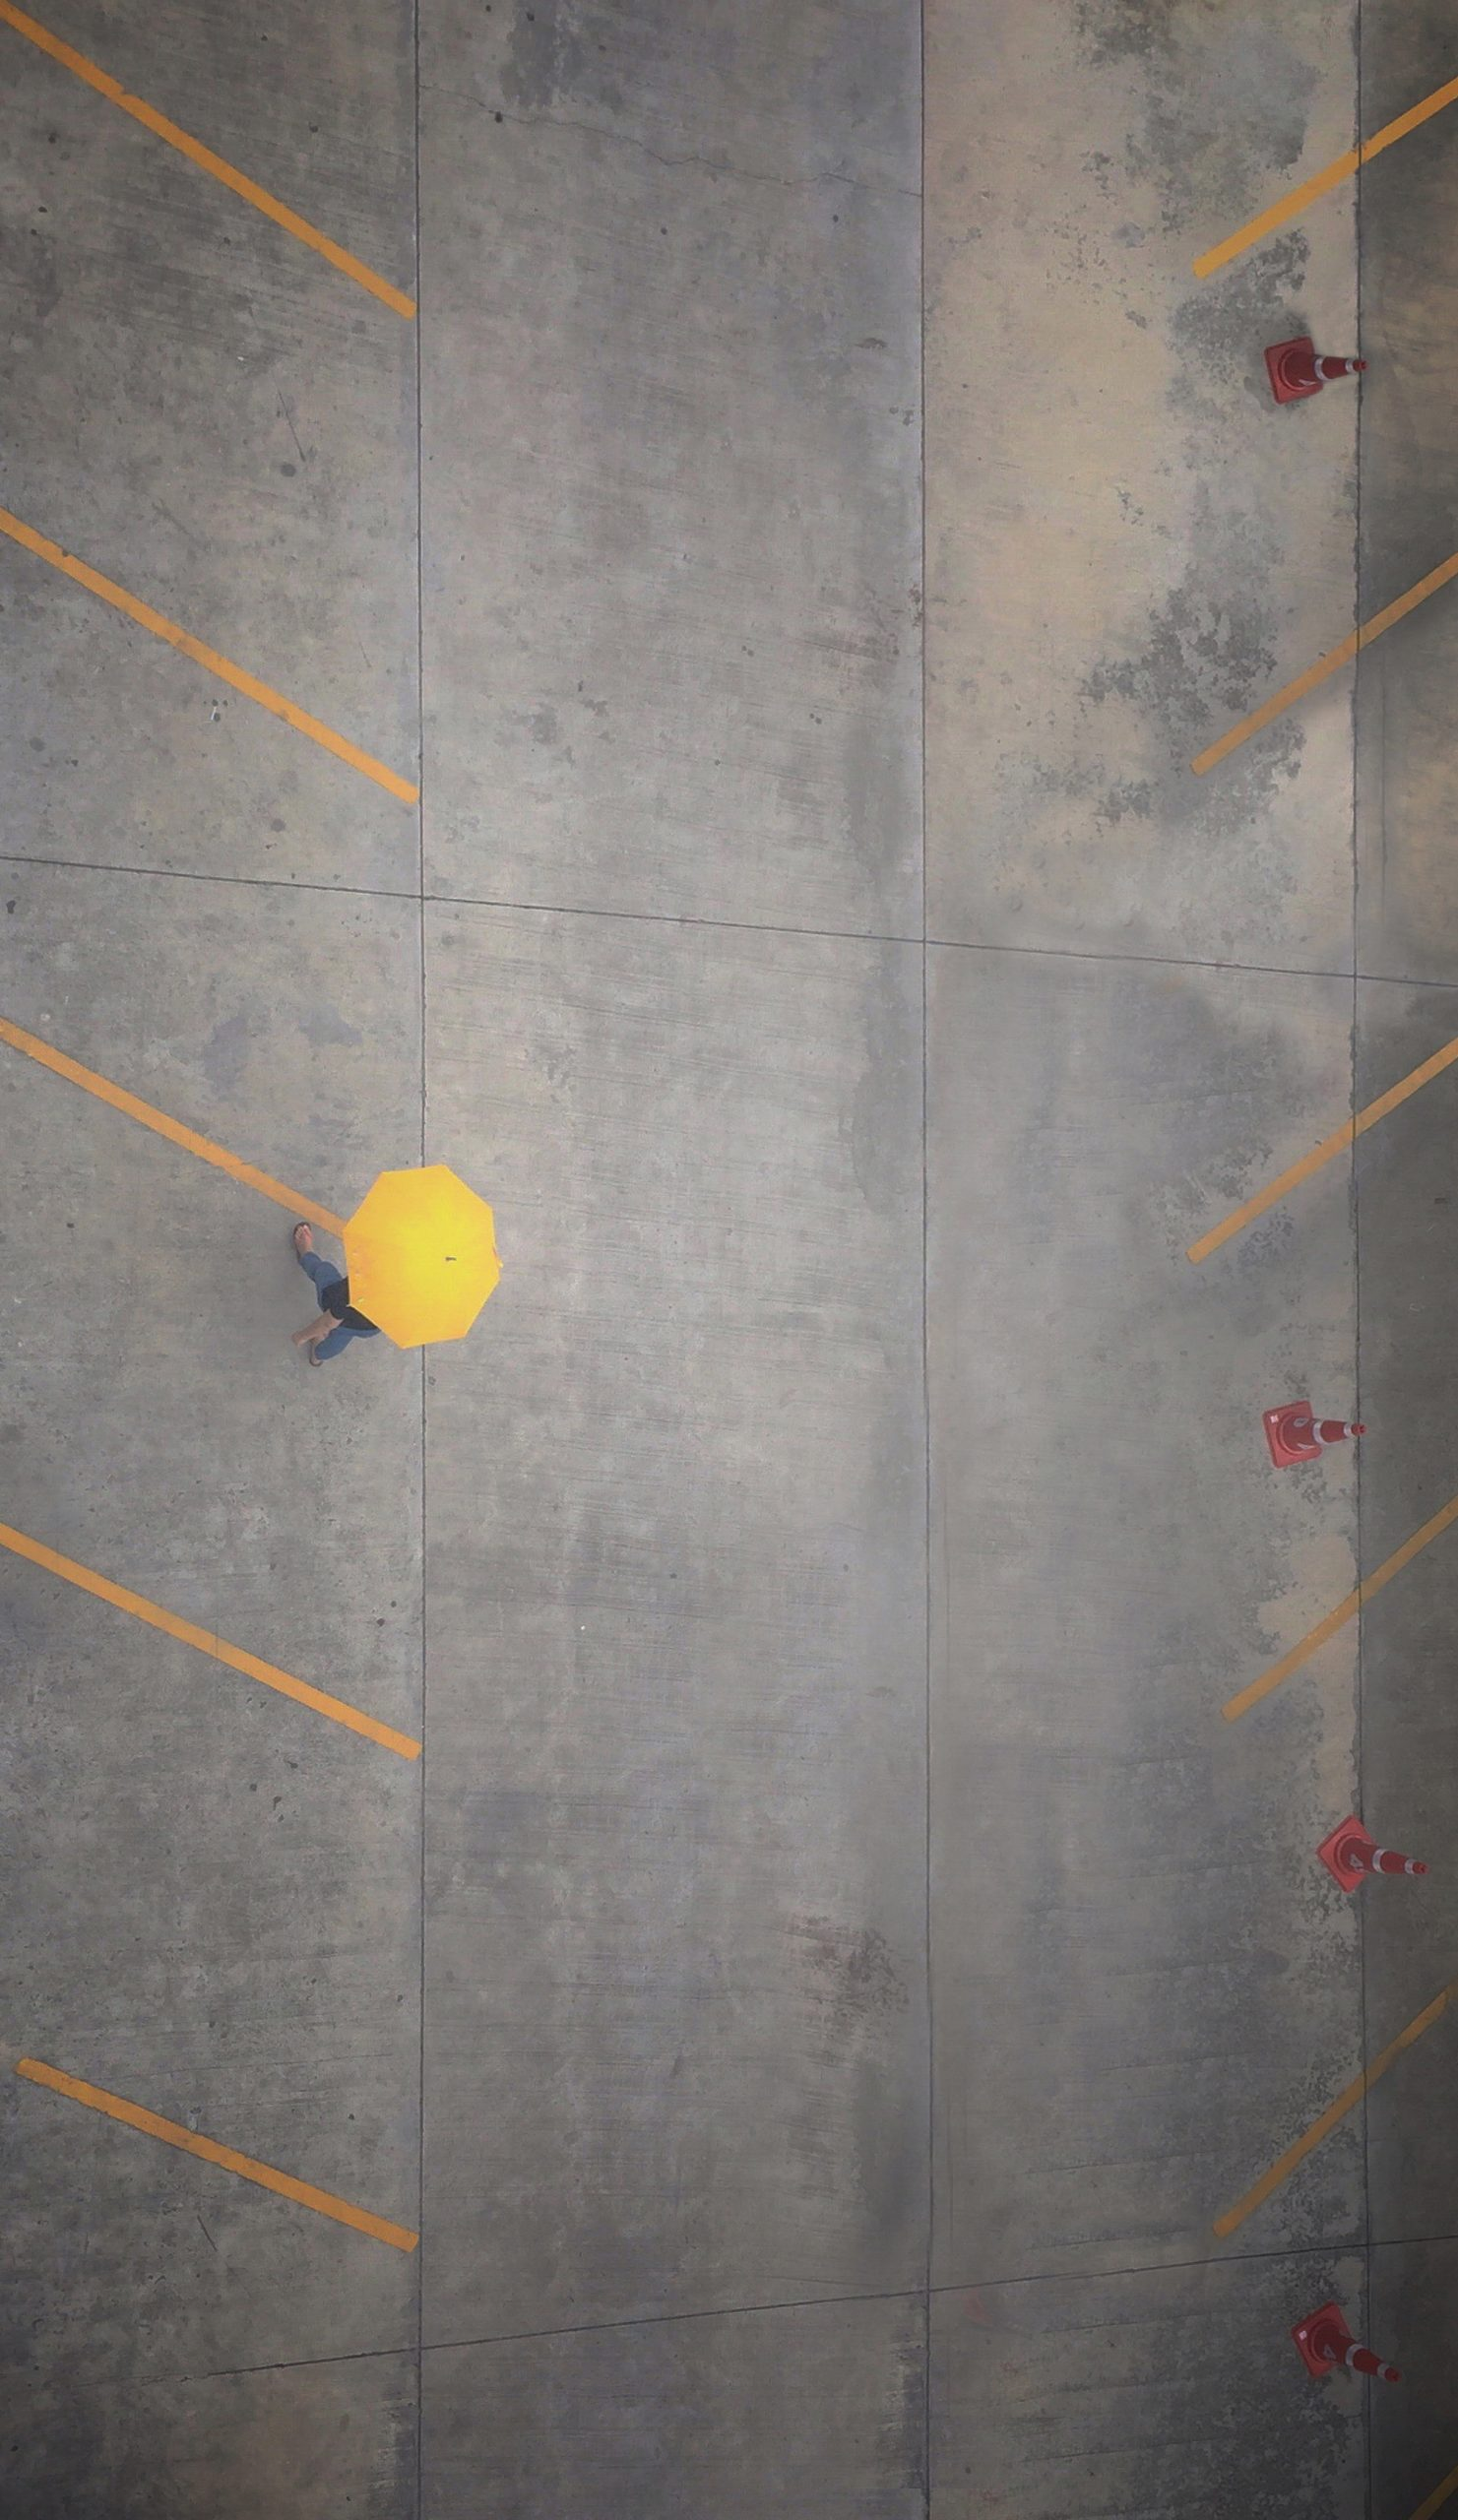 Concrete parking lots are very popular because of their durability and cost-effectiveness.